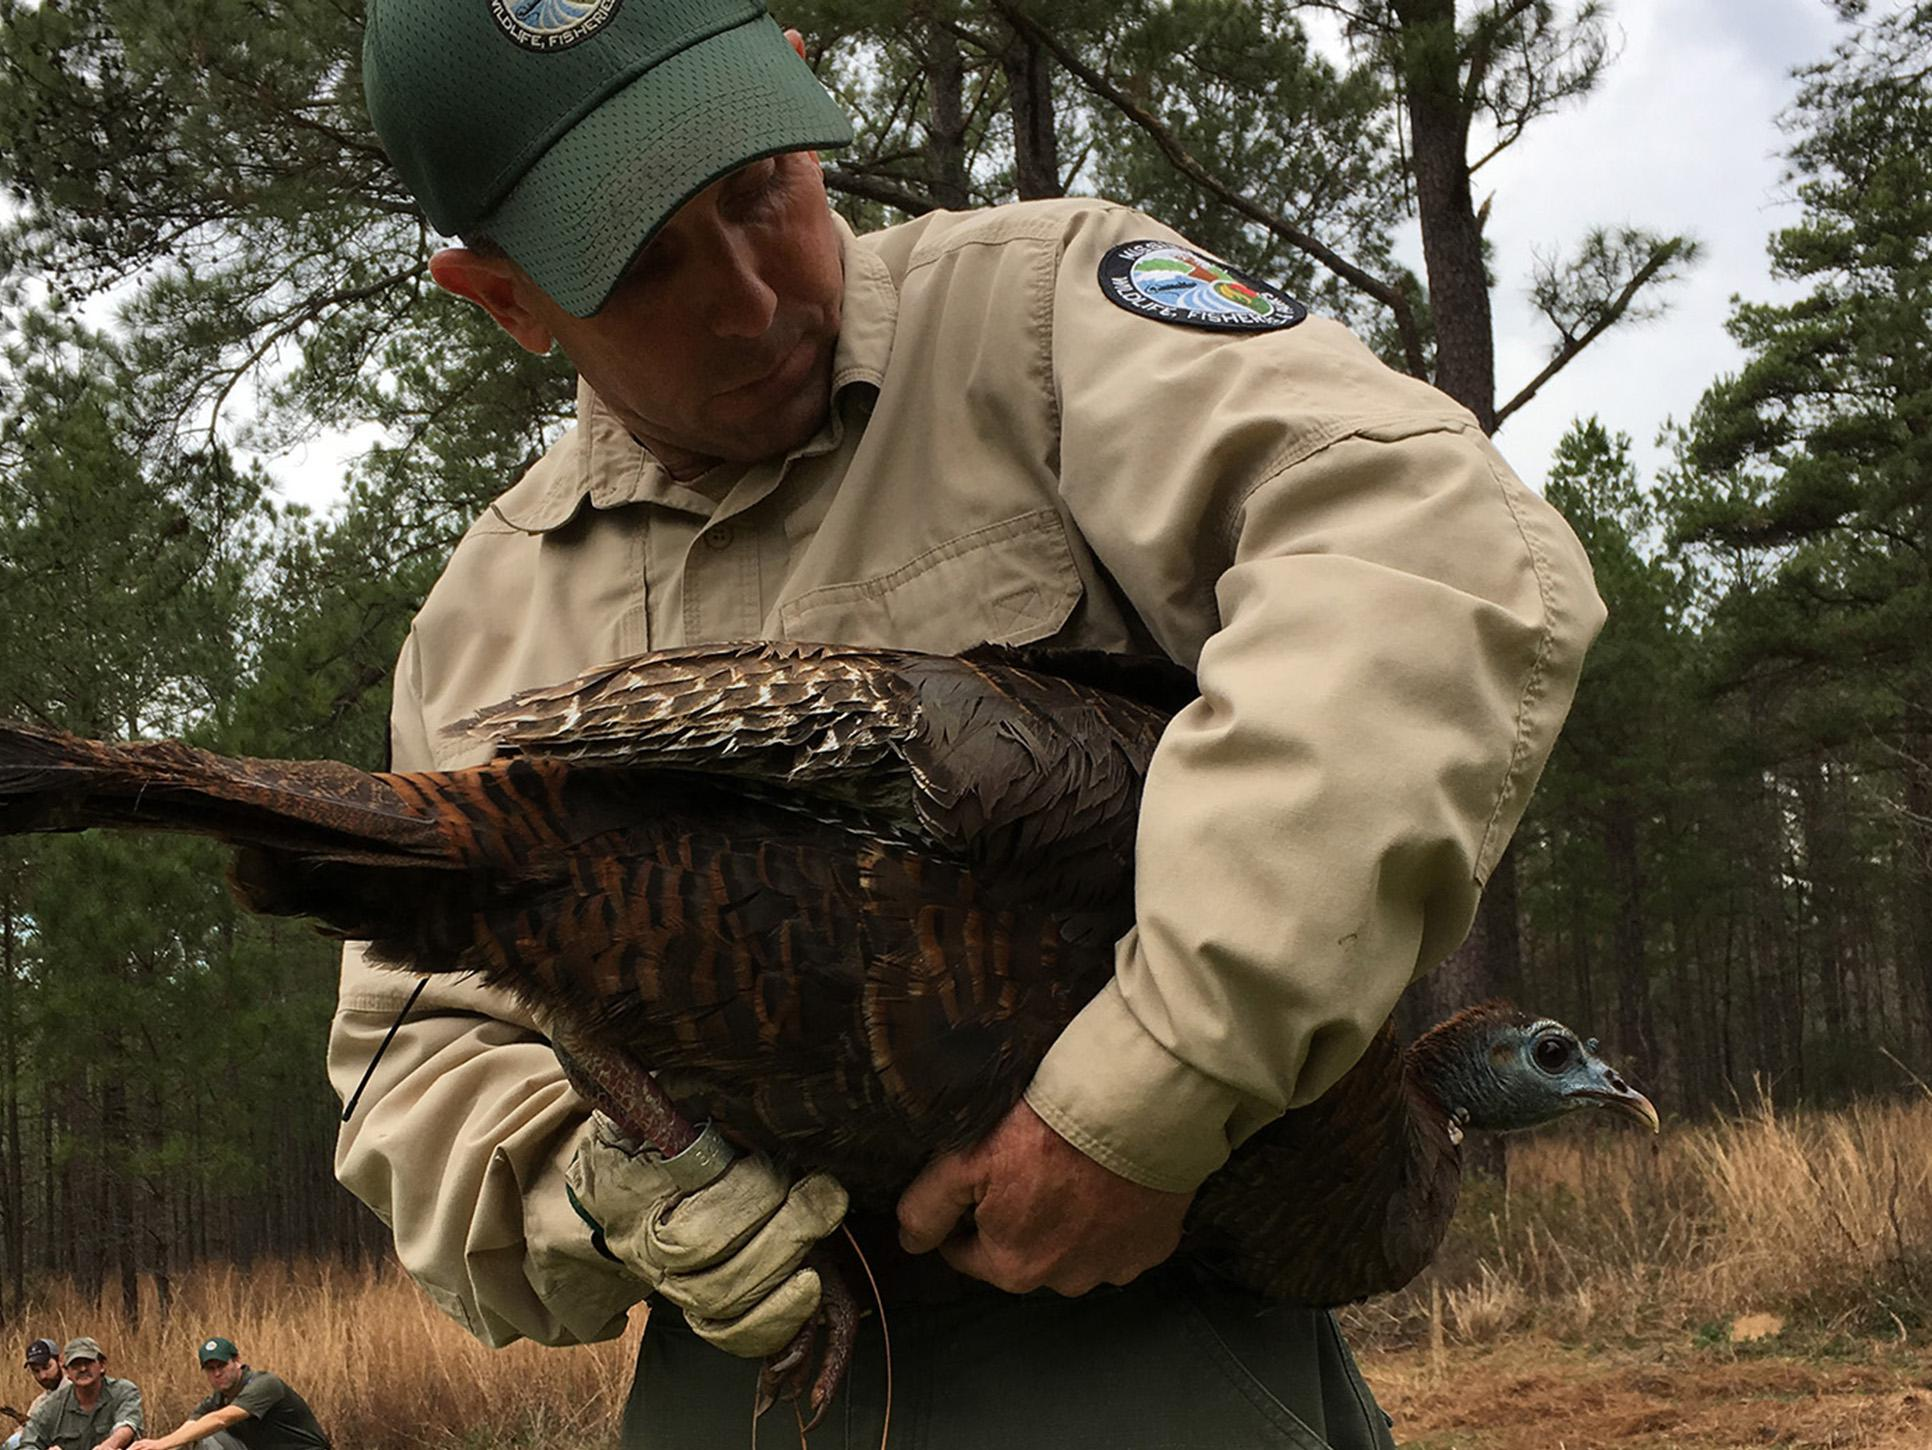 A man in a conservation officer uniform stands looking down at a large bird held under his arm.